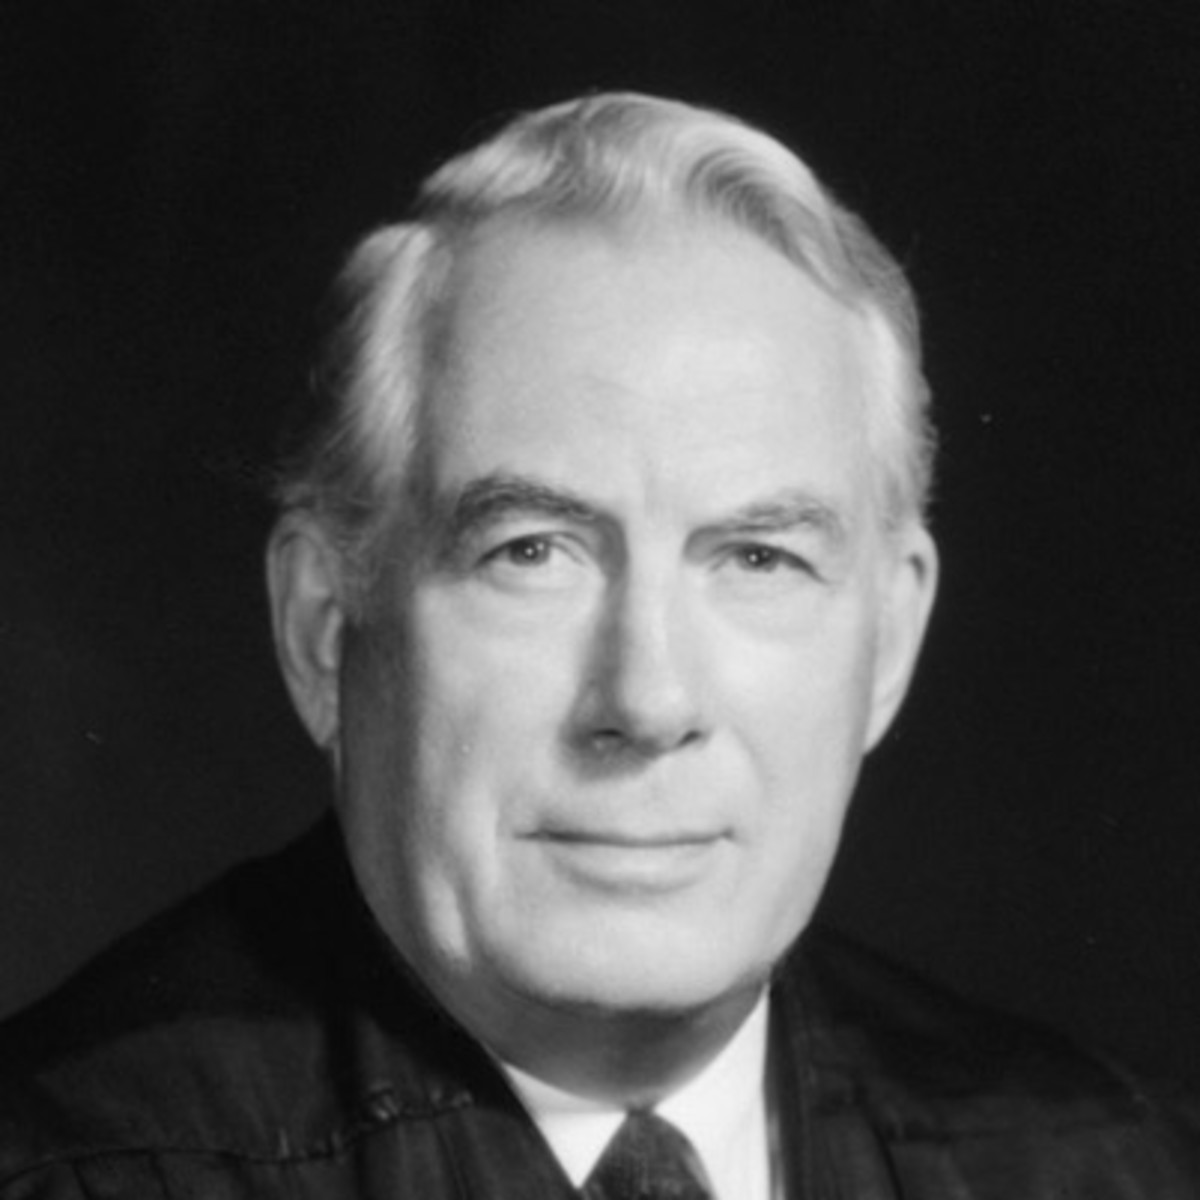 earl warren vs william rehnquist Even liberals may come to regard william rehnquist as one of the most   national culture, he wrote in a 7—2 opinion for the court in dickerson v  that  put the brakes on some of the excesses of the earl warren era while.